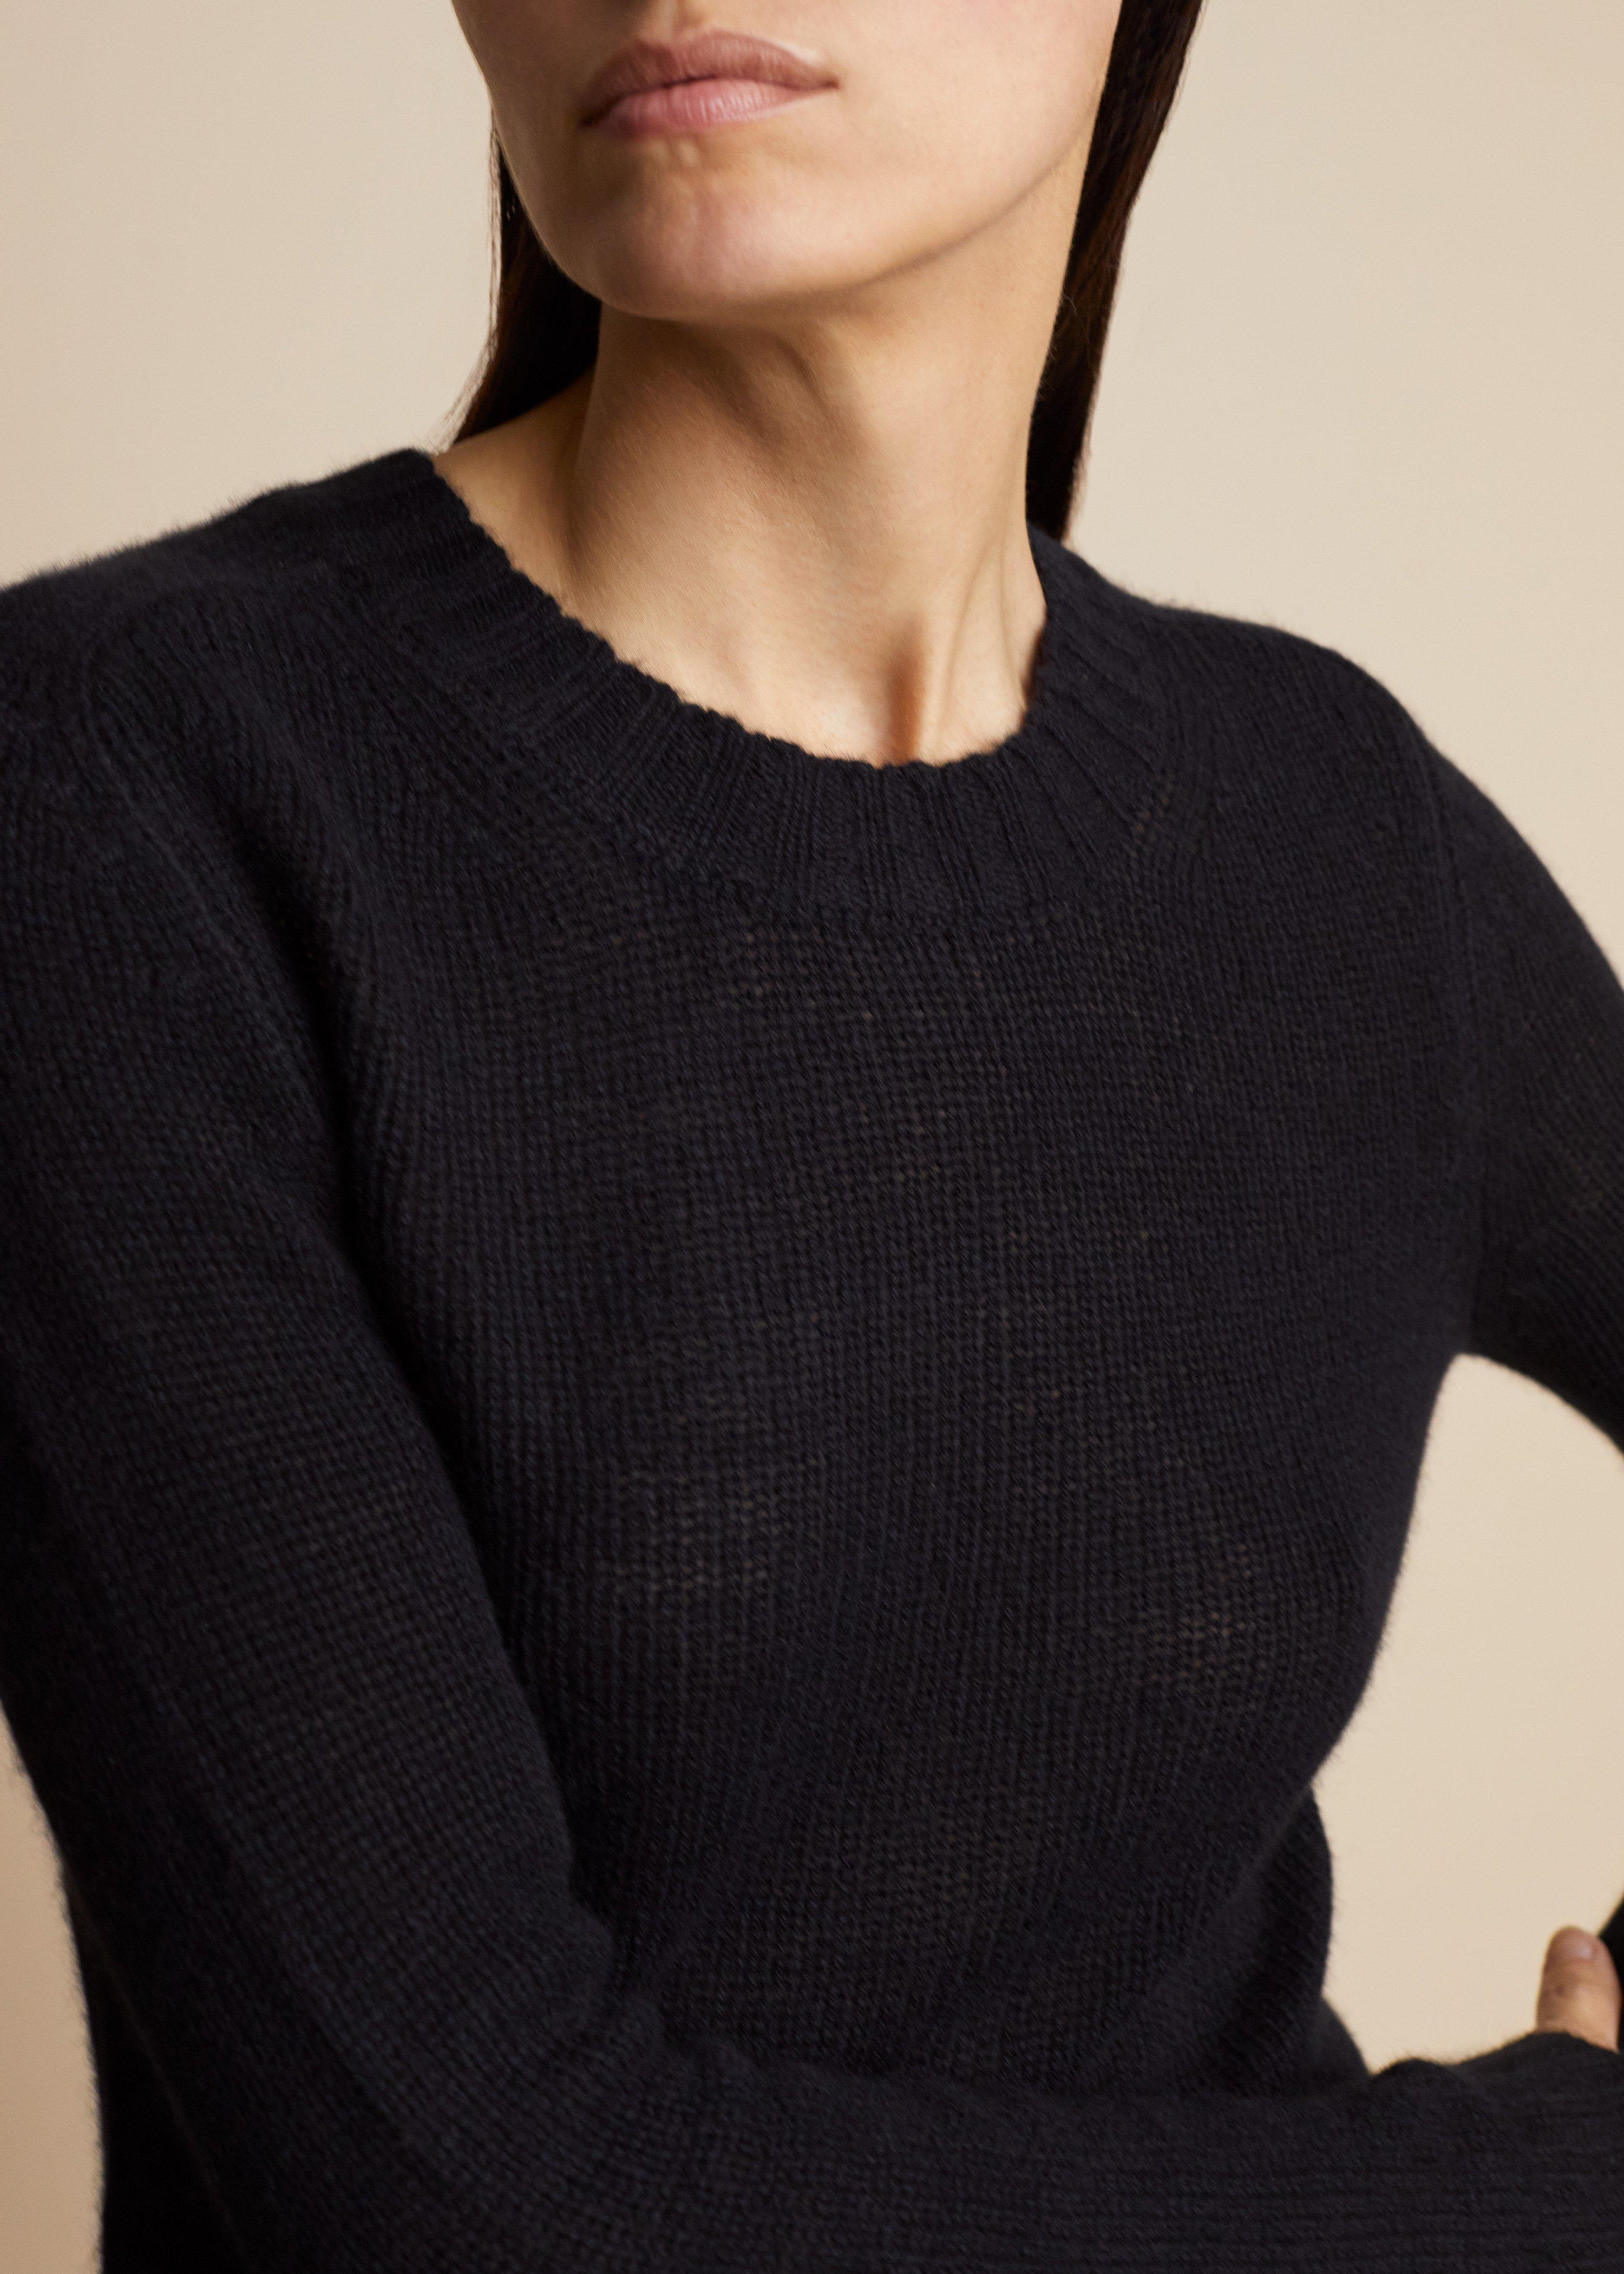 The Mary Jane Sweater in Black 3